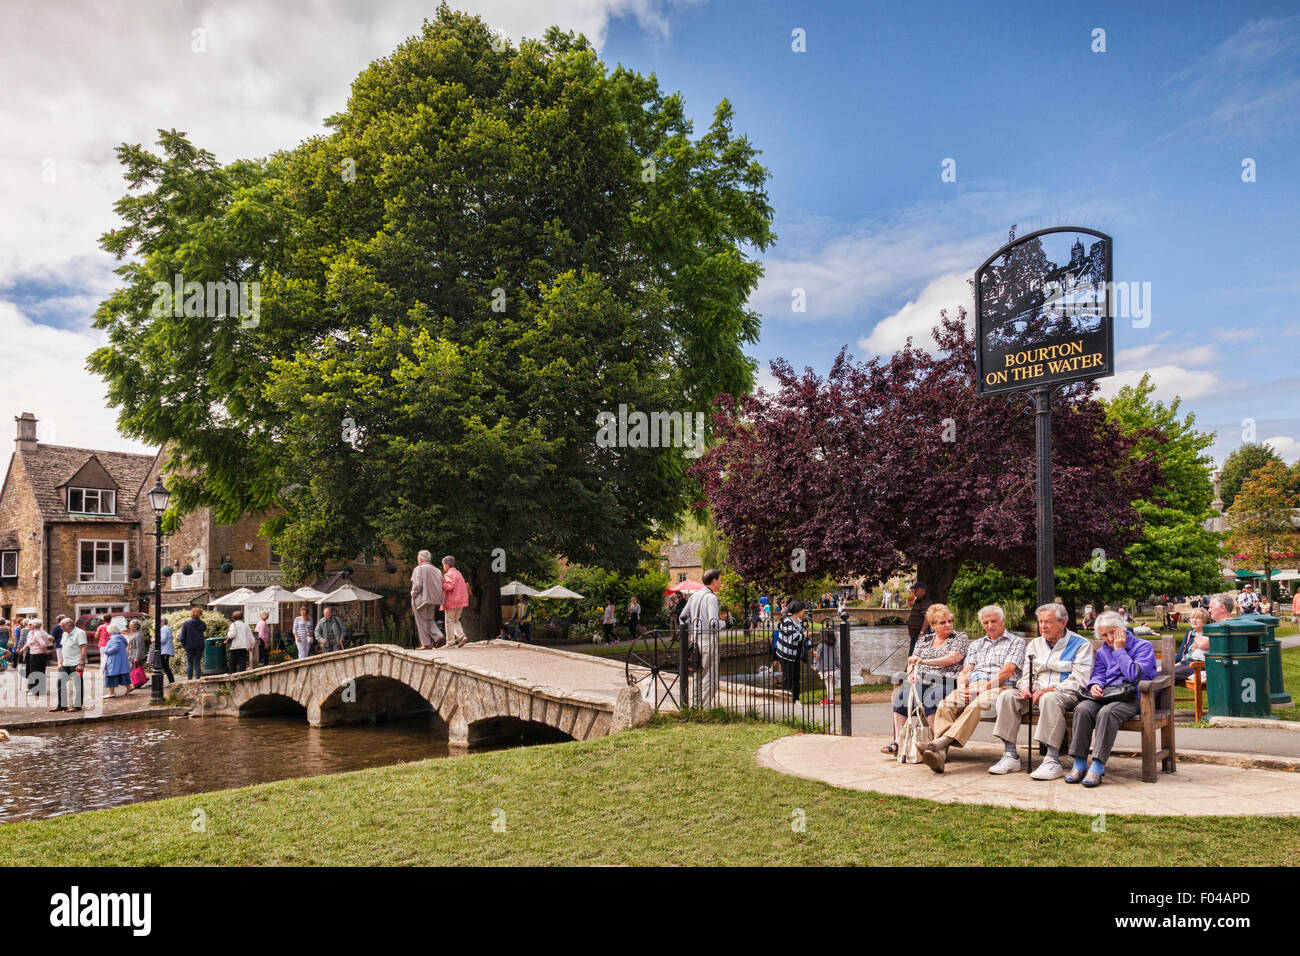 Tourists enjoy summer afternoon in the Cotswold village of Bourton-on-the-Water, Gloucestershire, England. Stock Photo